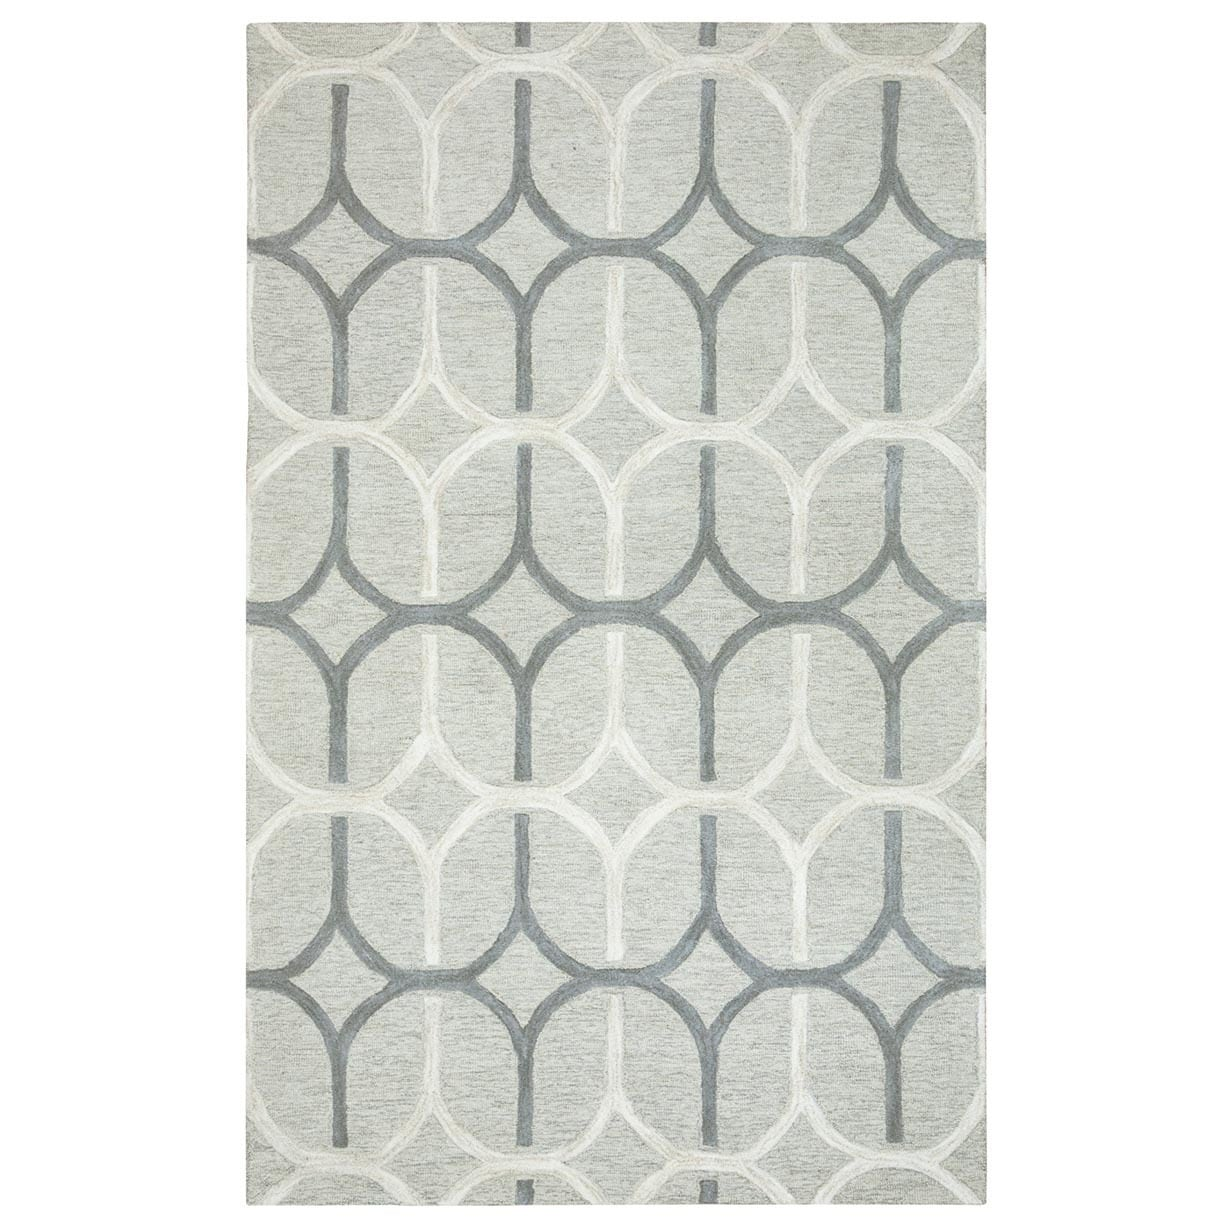 Rizzy Home Caterine Collection CE9653 Area Rug (9x 12) - 9 x 12 (9 x 12 - Grey/Off-White)